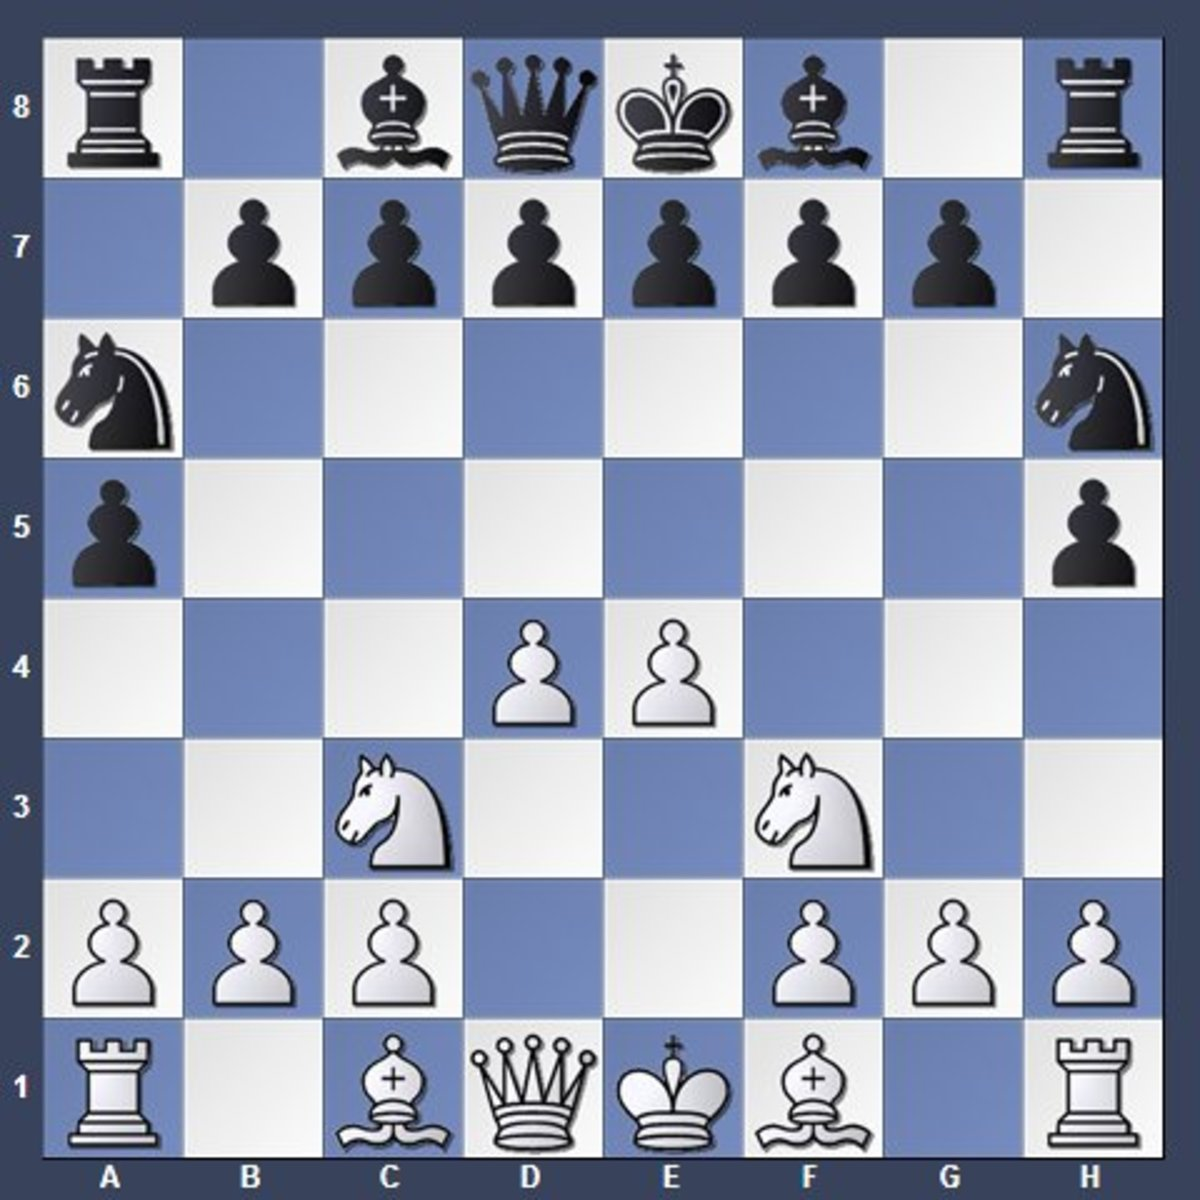 Black's two pawn moves didn't release bishops or control the center. His knights are developed decentralized towards the edges of the board.  The only thing black did right was not moving the same piece twice in the opening. Black is losing. +/-